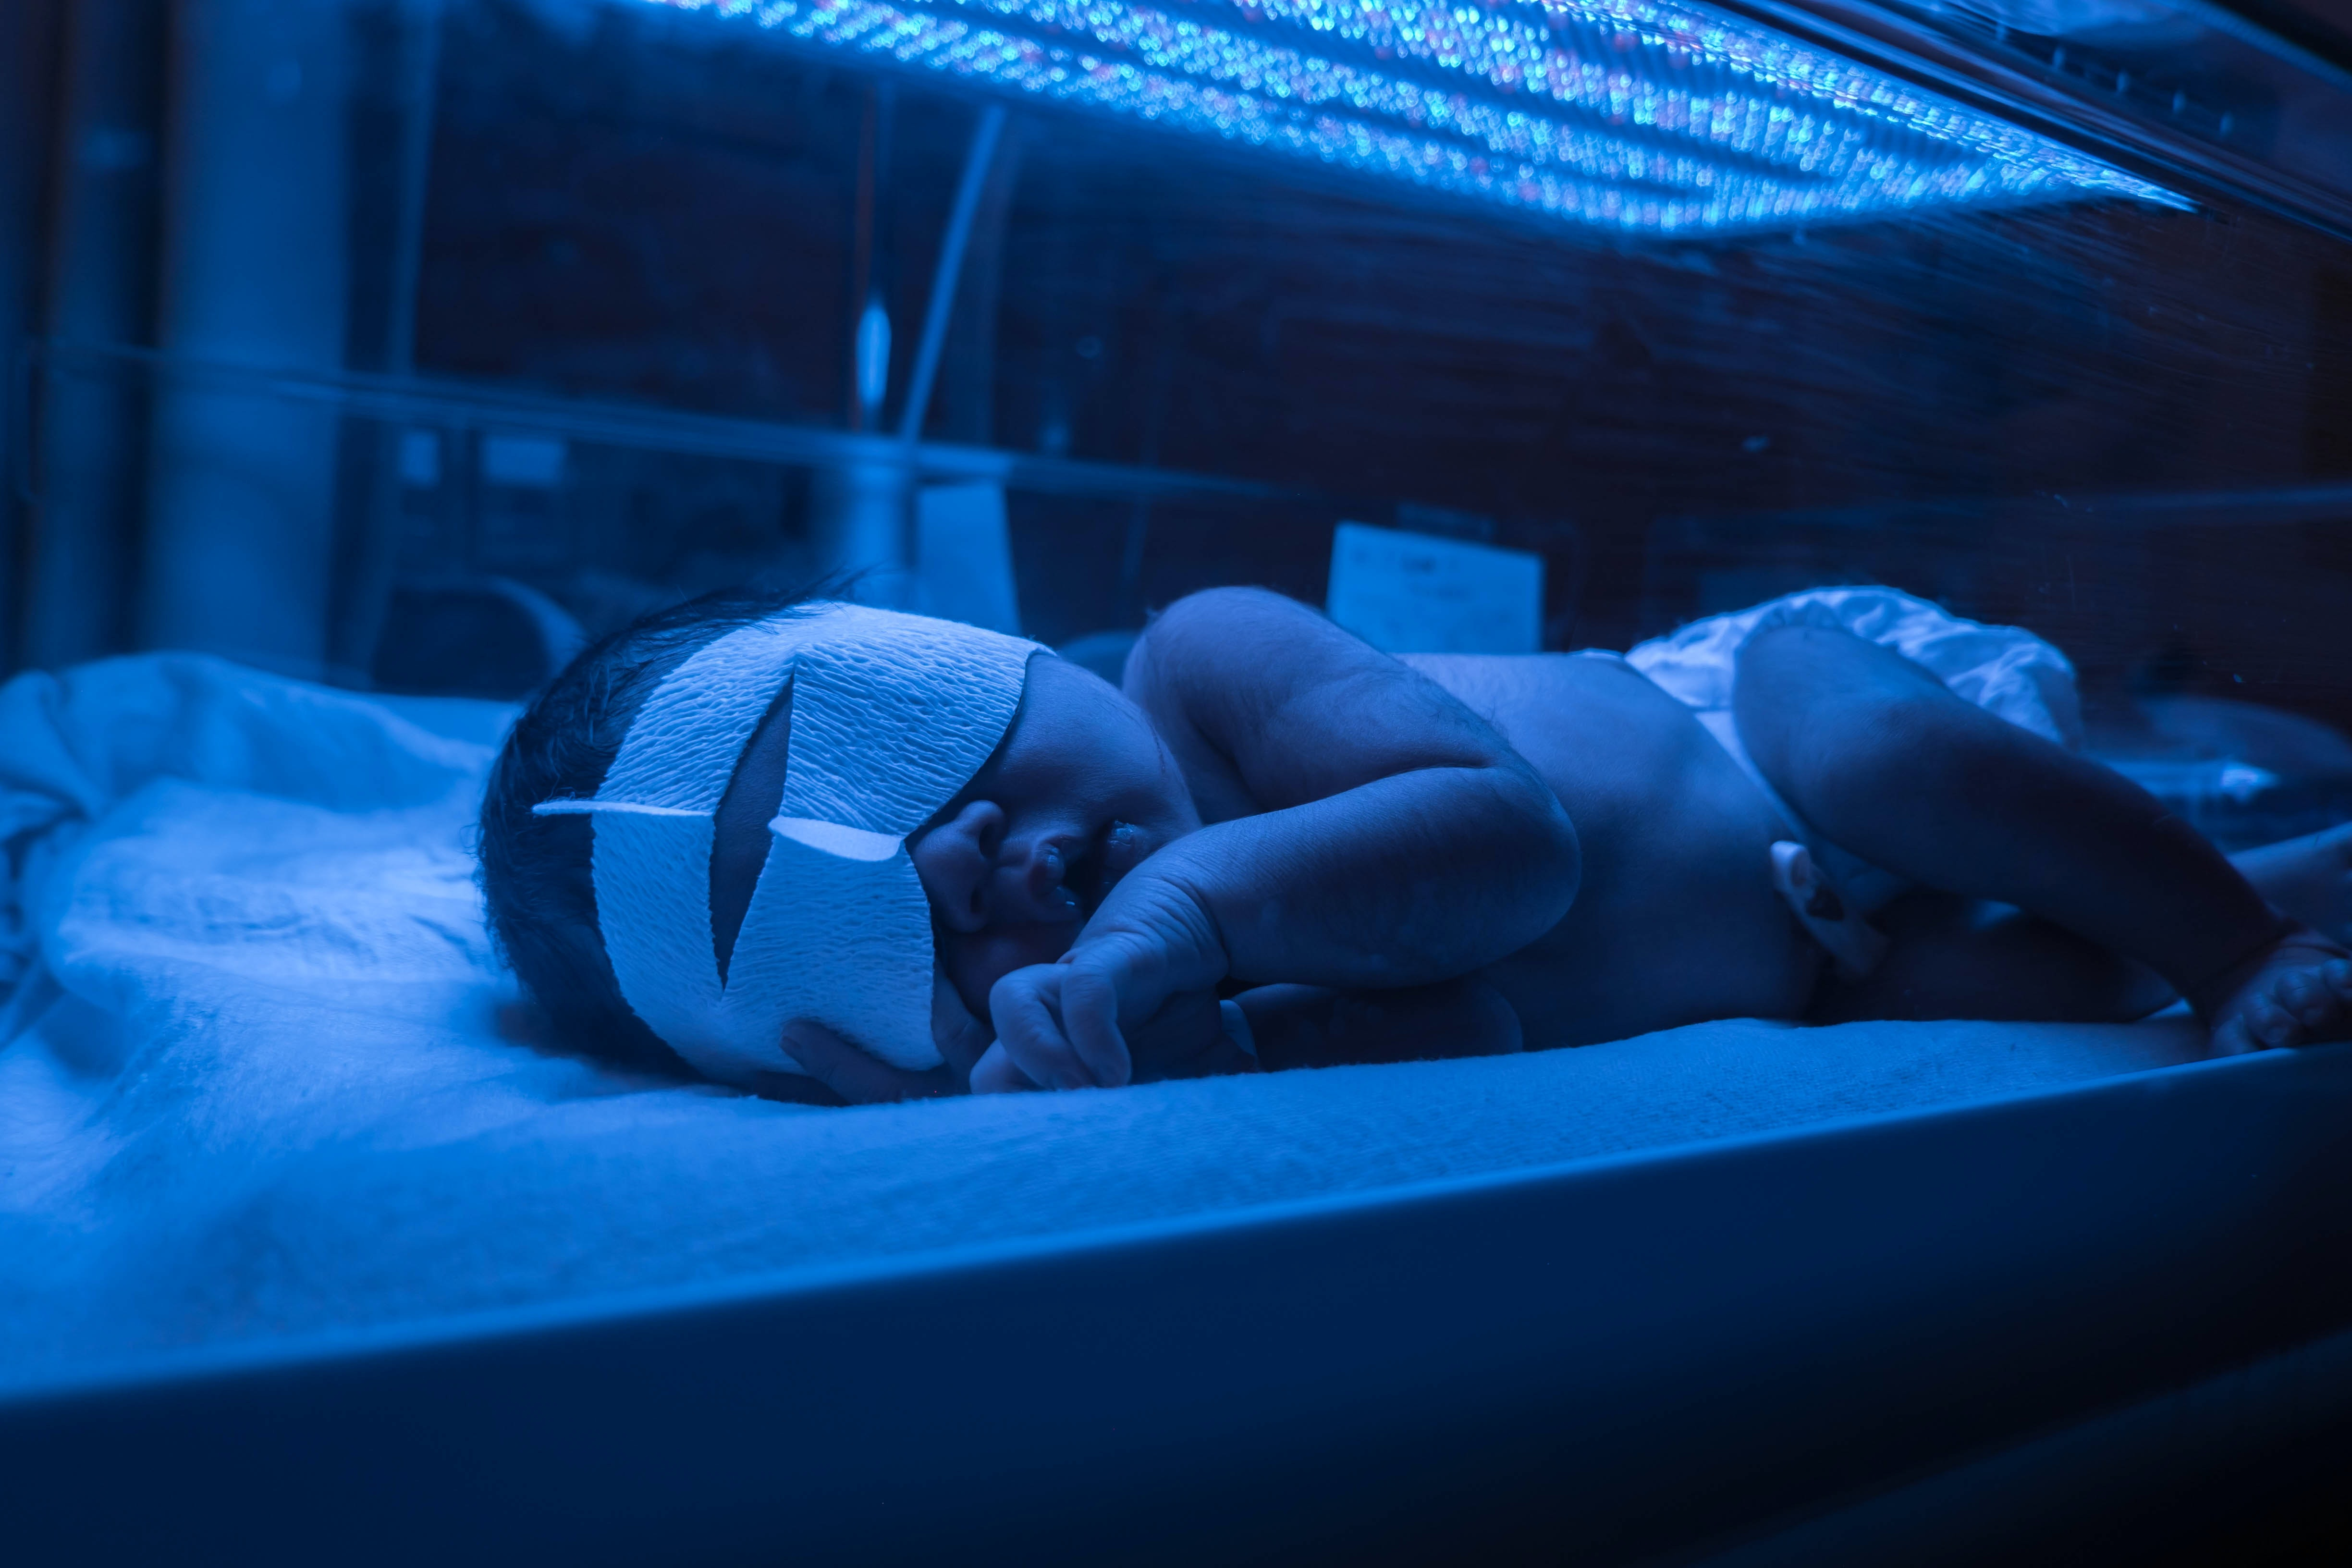 Newborn Babies Jaundice Treatment How Long Does Jaundice Last Not Every Baby Has To Stay